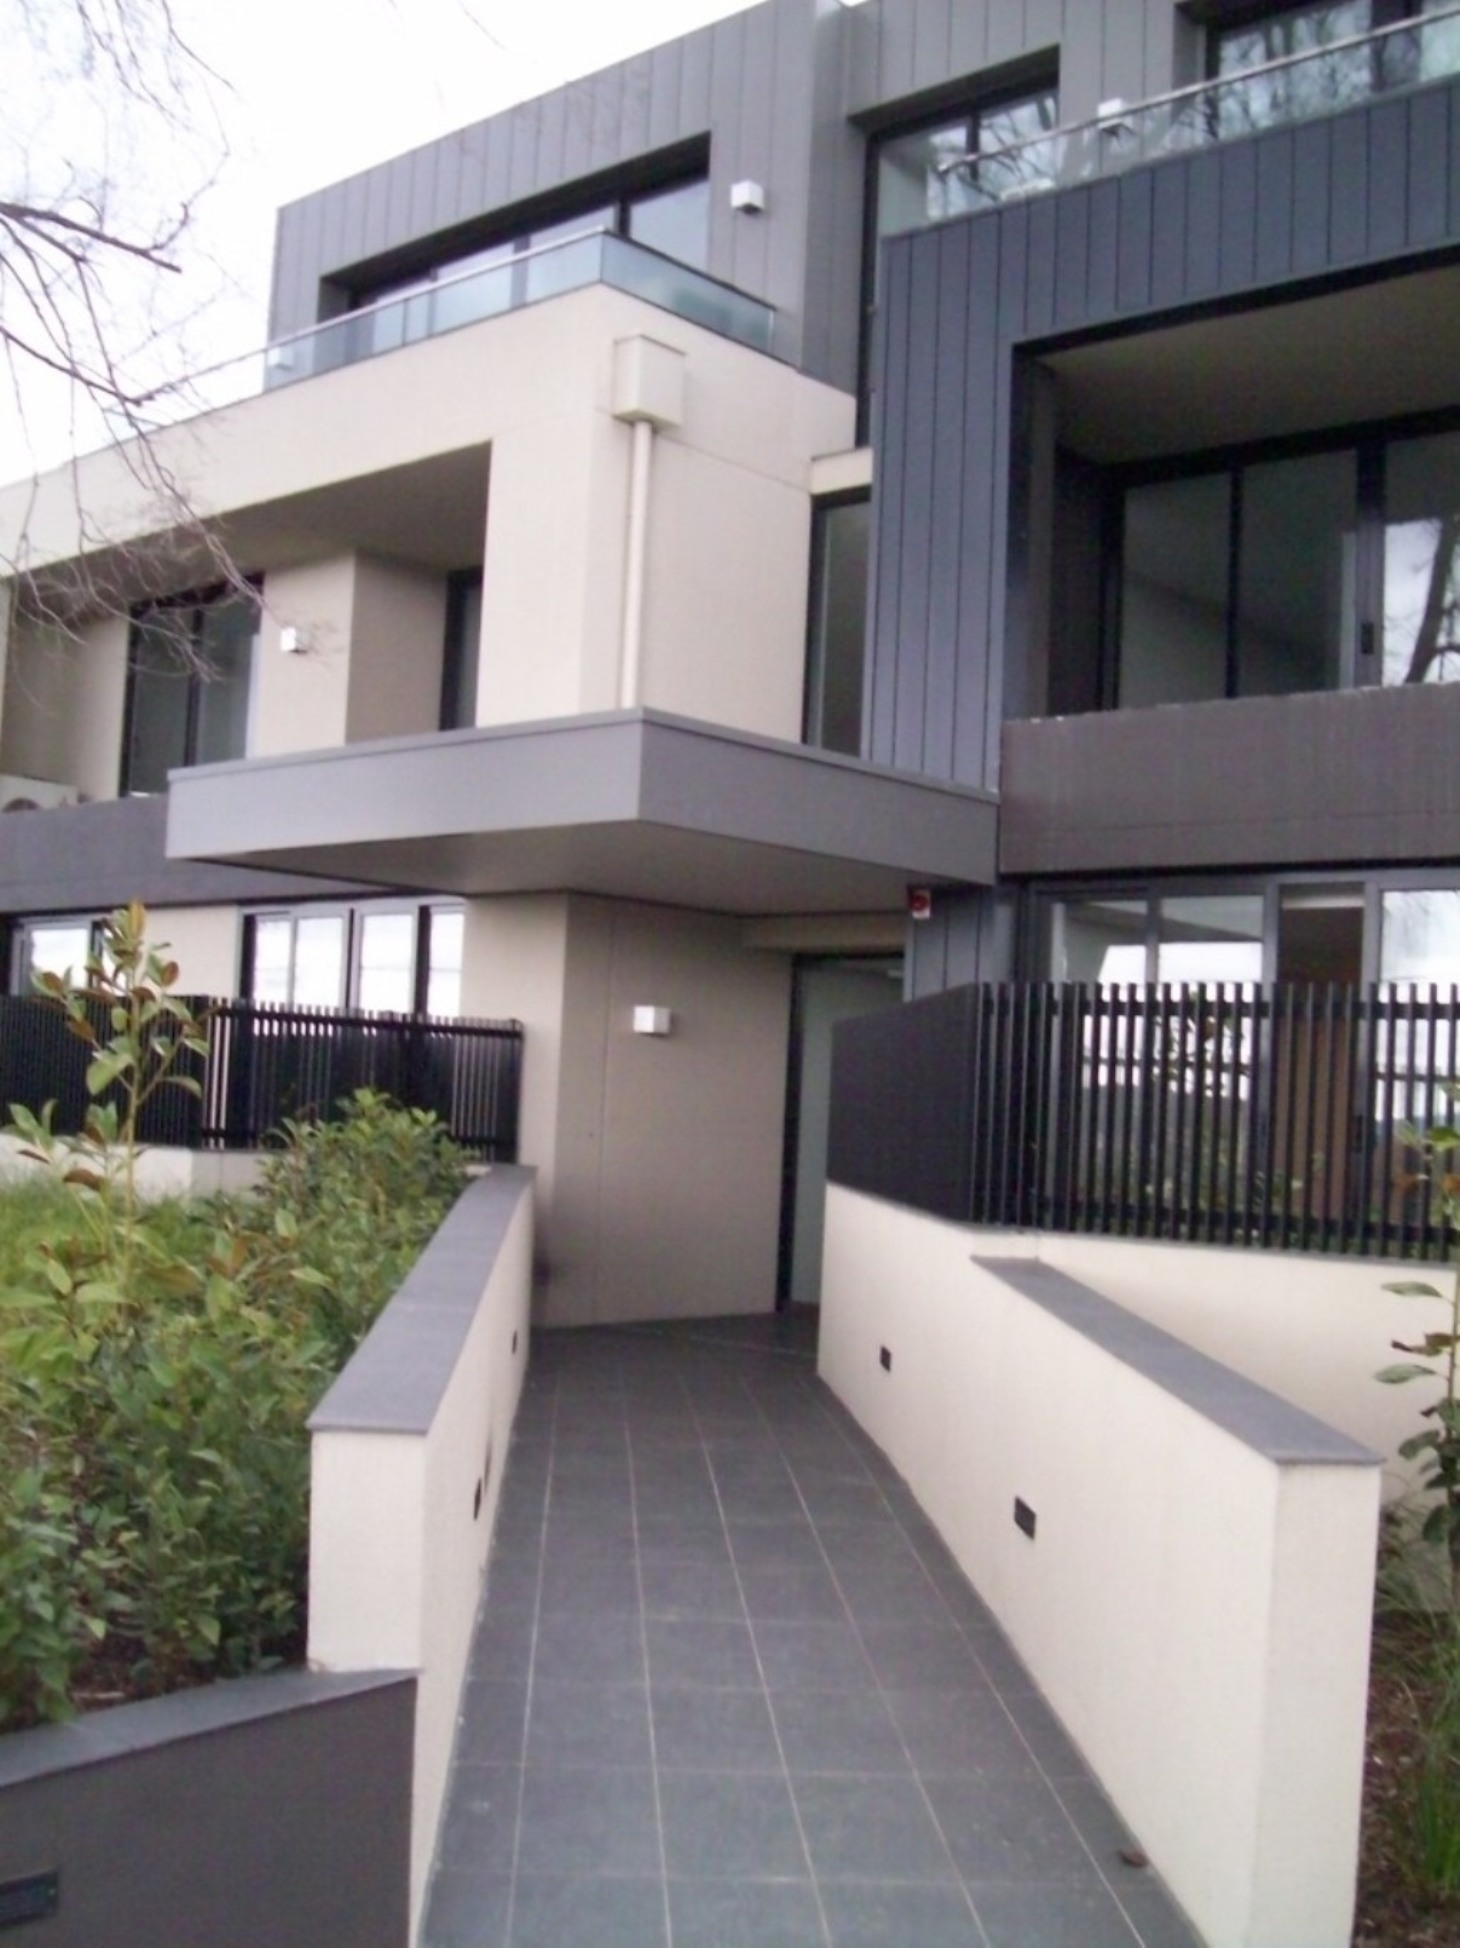 High Quality 3 Storey 97 Whittens Ln Height 8.84 Metres Click To Enlarge